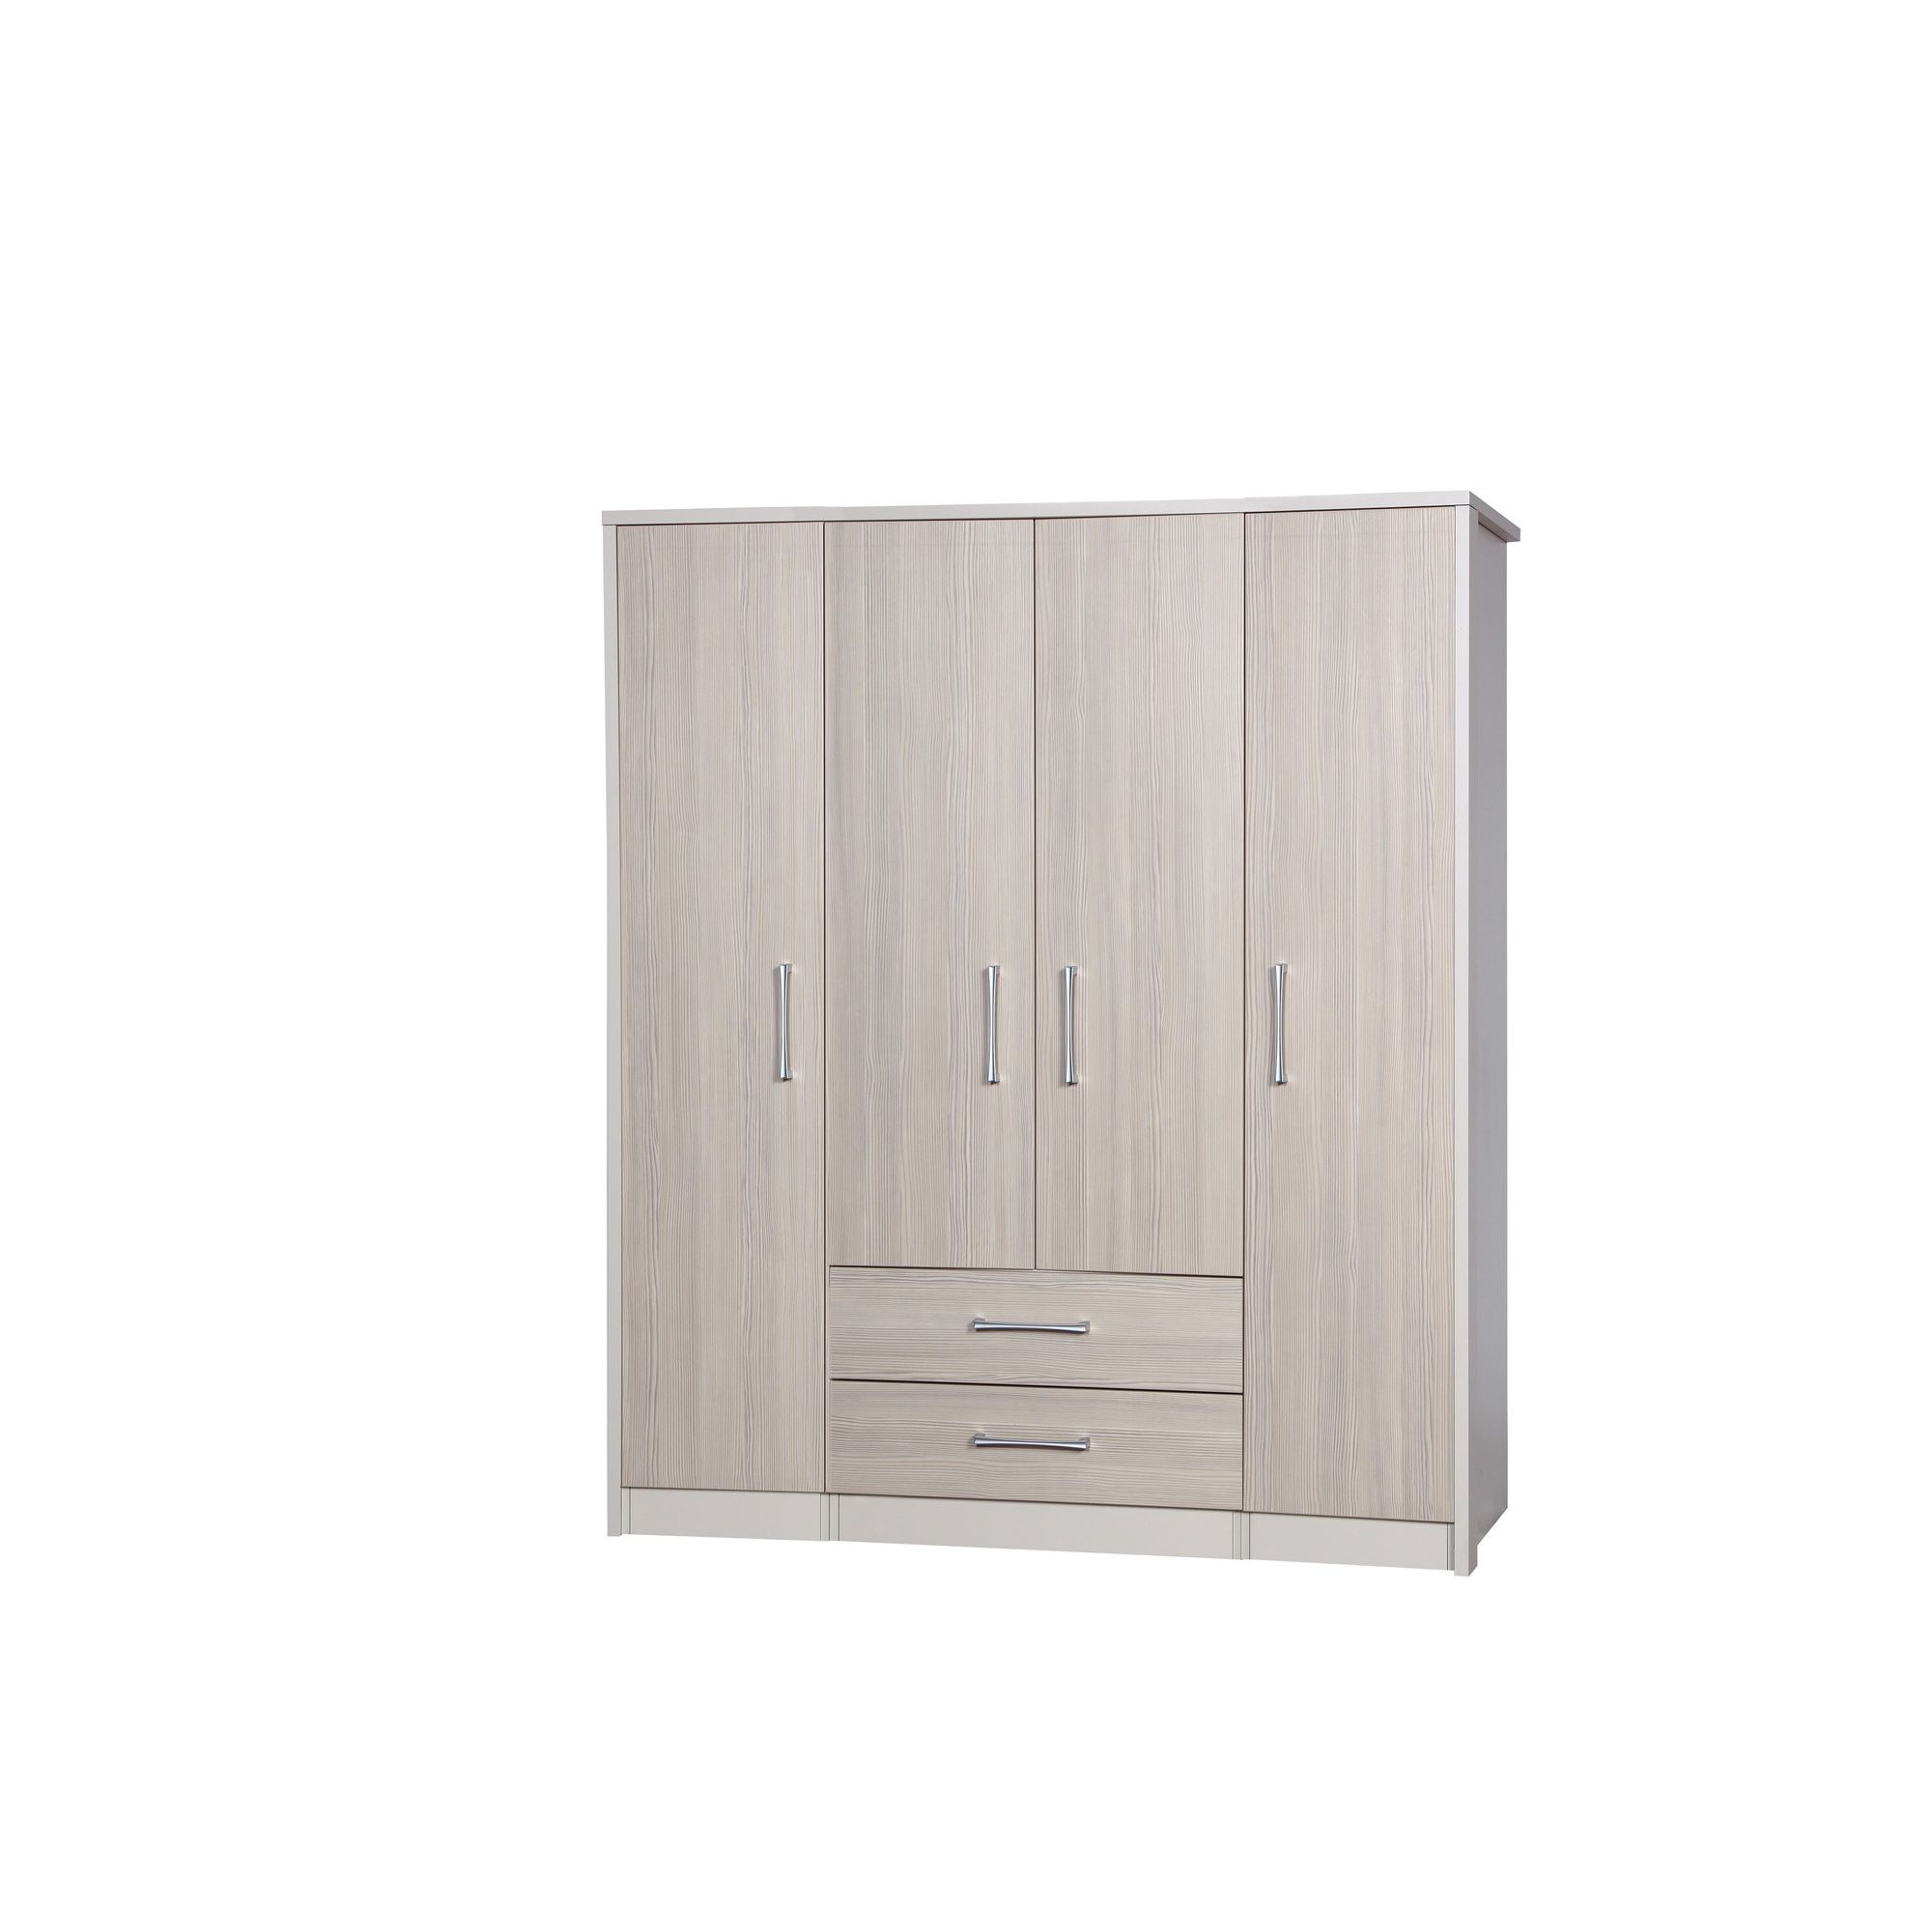 Alto Furniture Avola 4 Door Combi and Singles Wardrobe - Cream Carcass With Champagne Avola at Tescos Direct